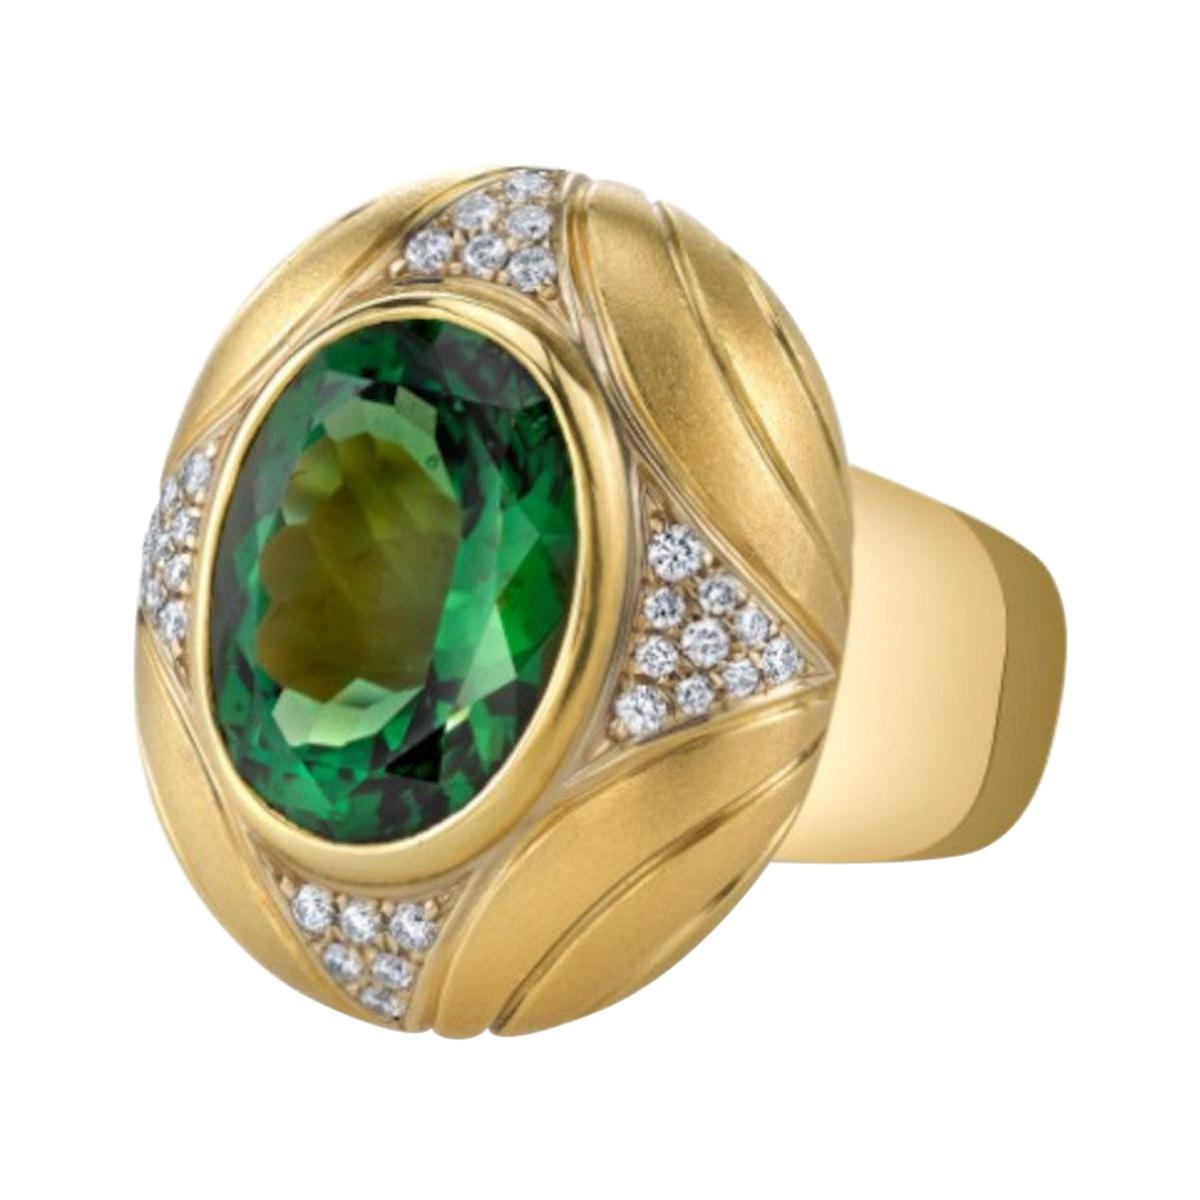 10.31 Carat Green Tourmaline and Diamond Yellow Gold Engraved Dome Ring